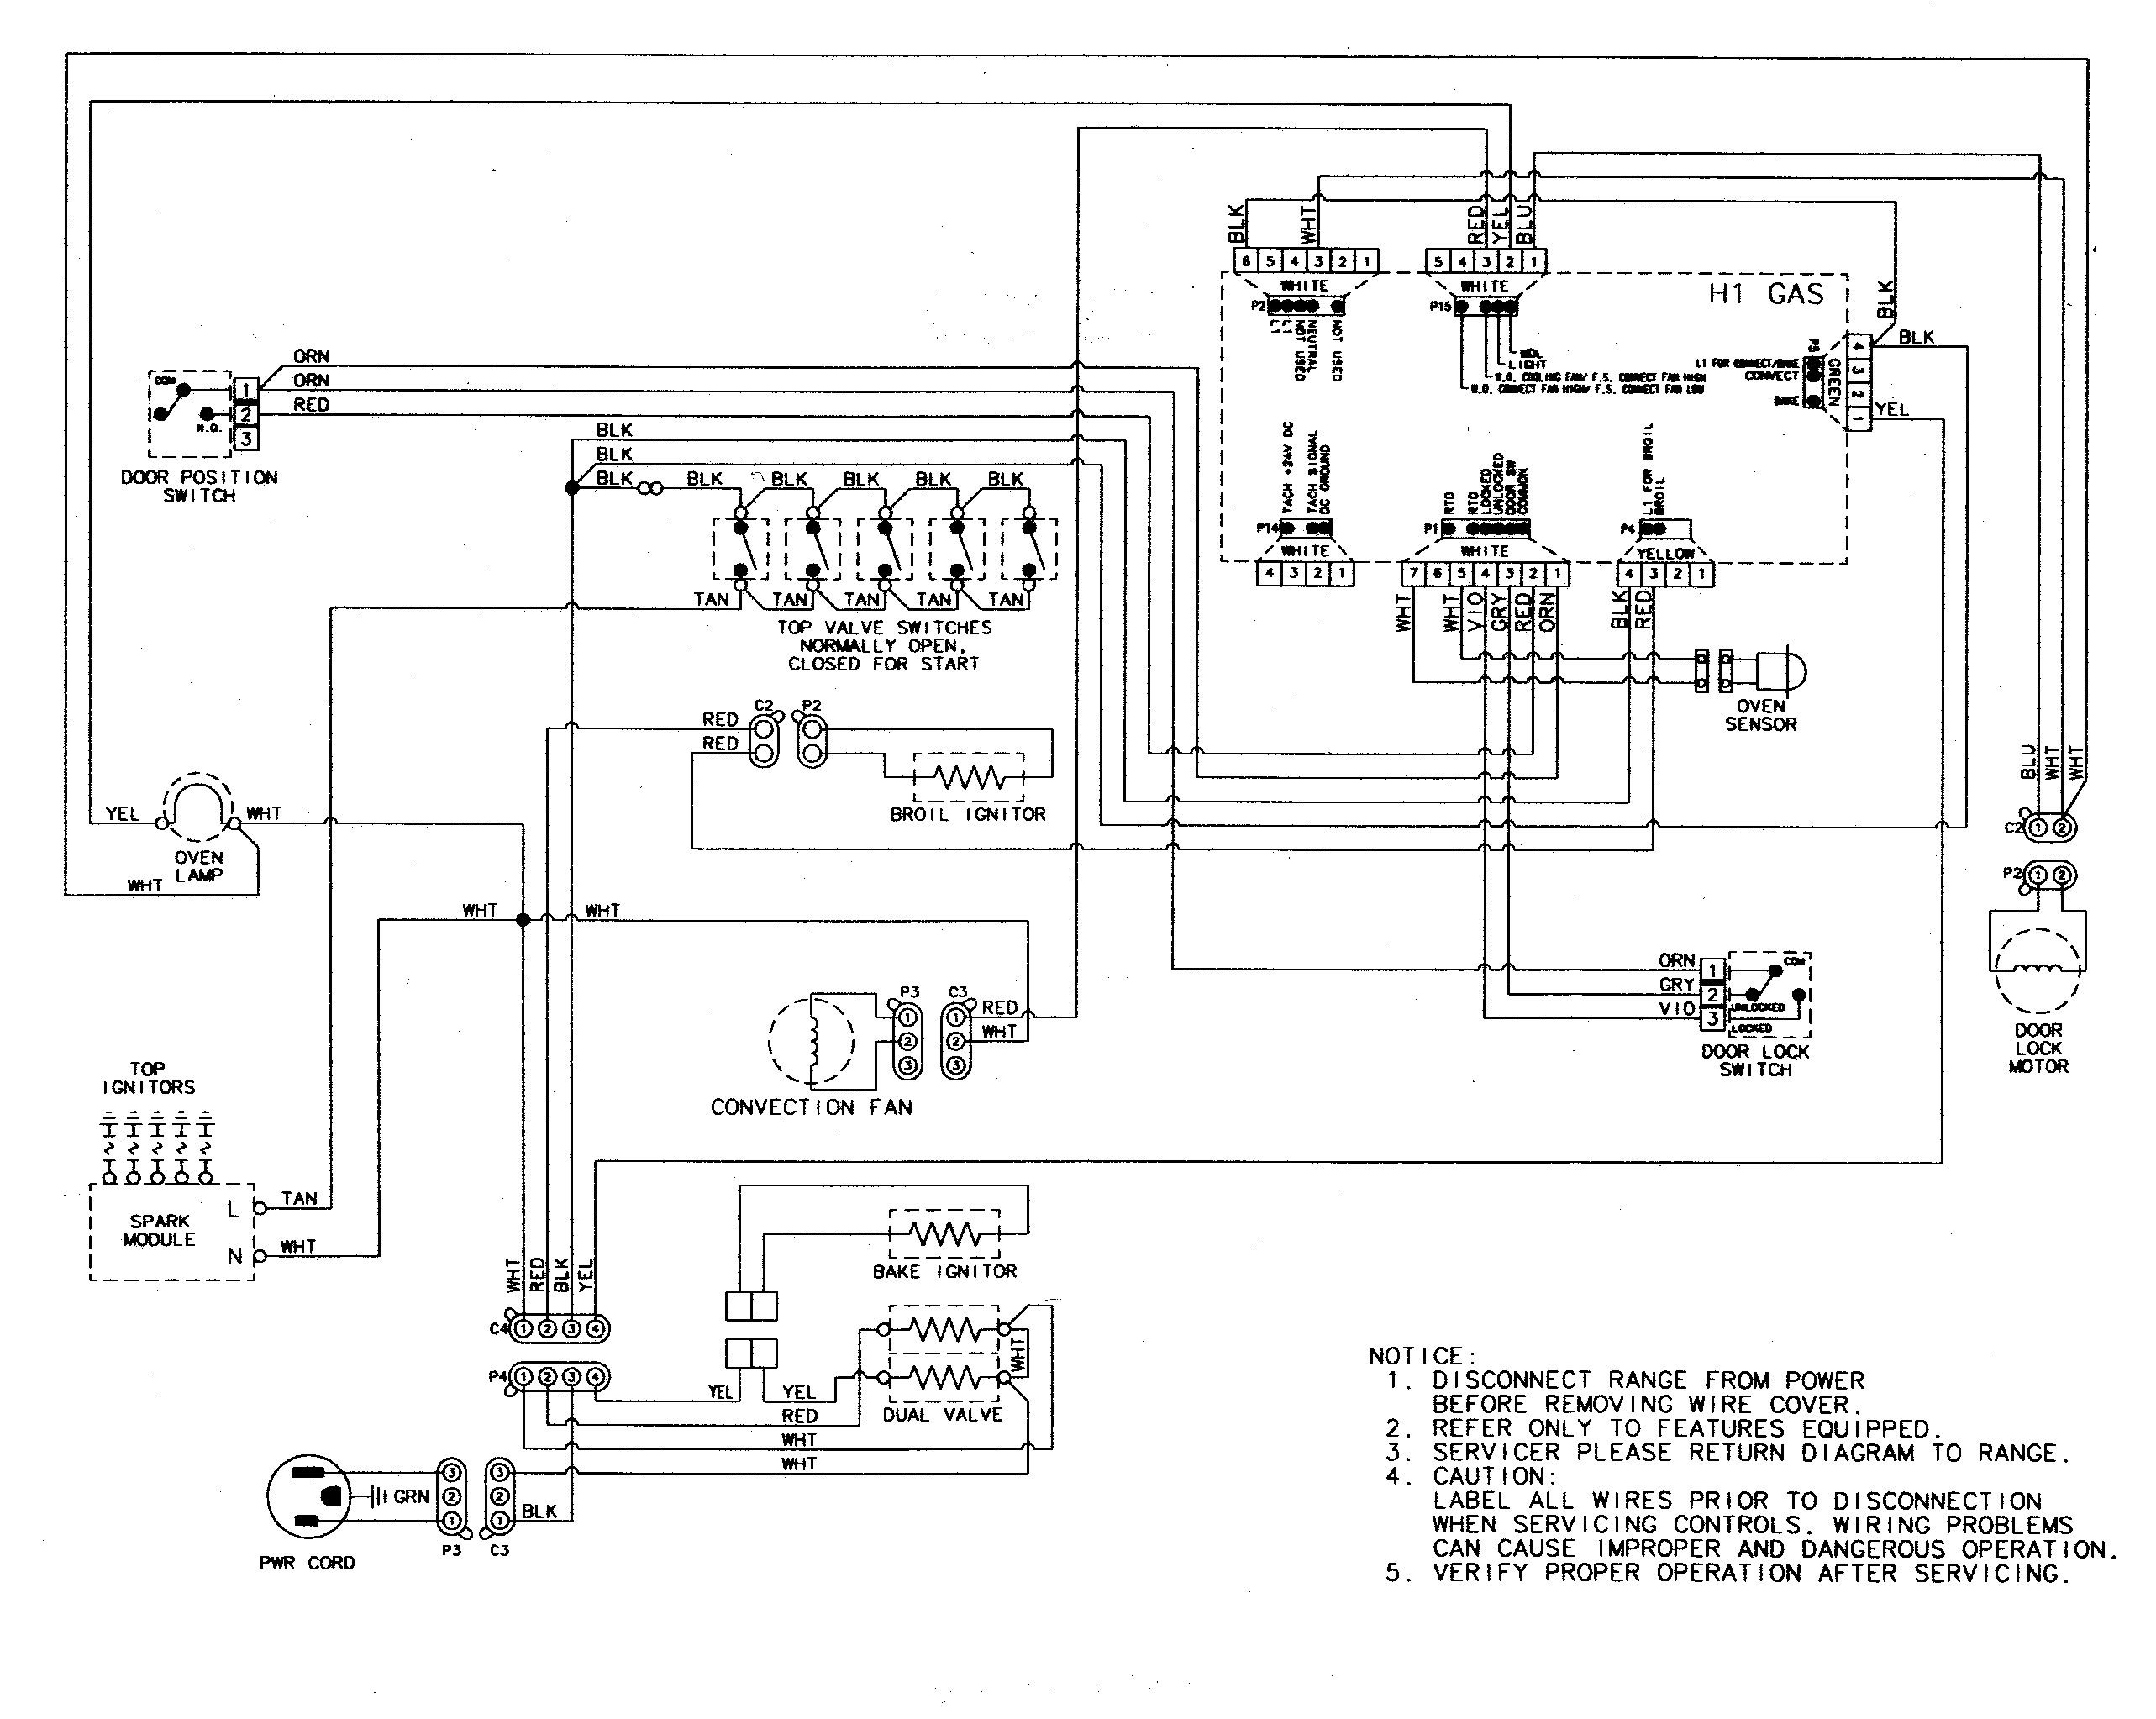 autocad wiring diagram for washer dryer